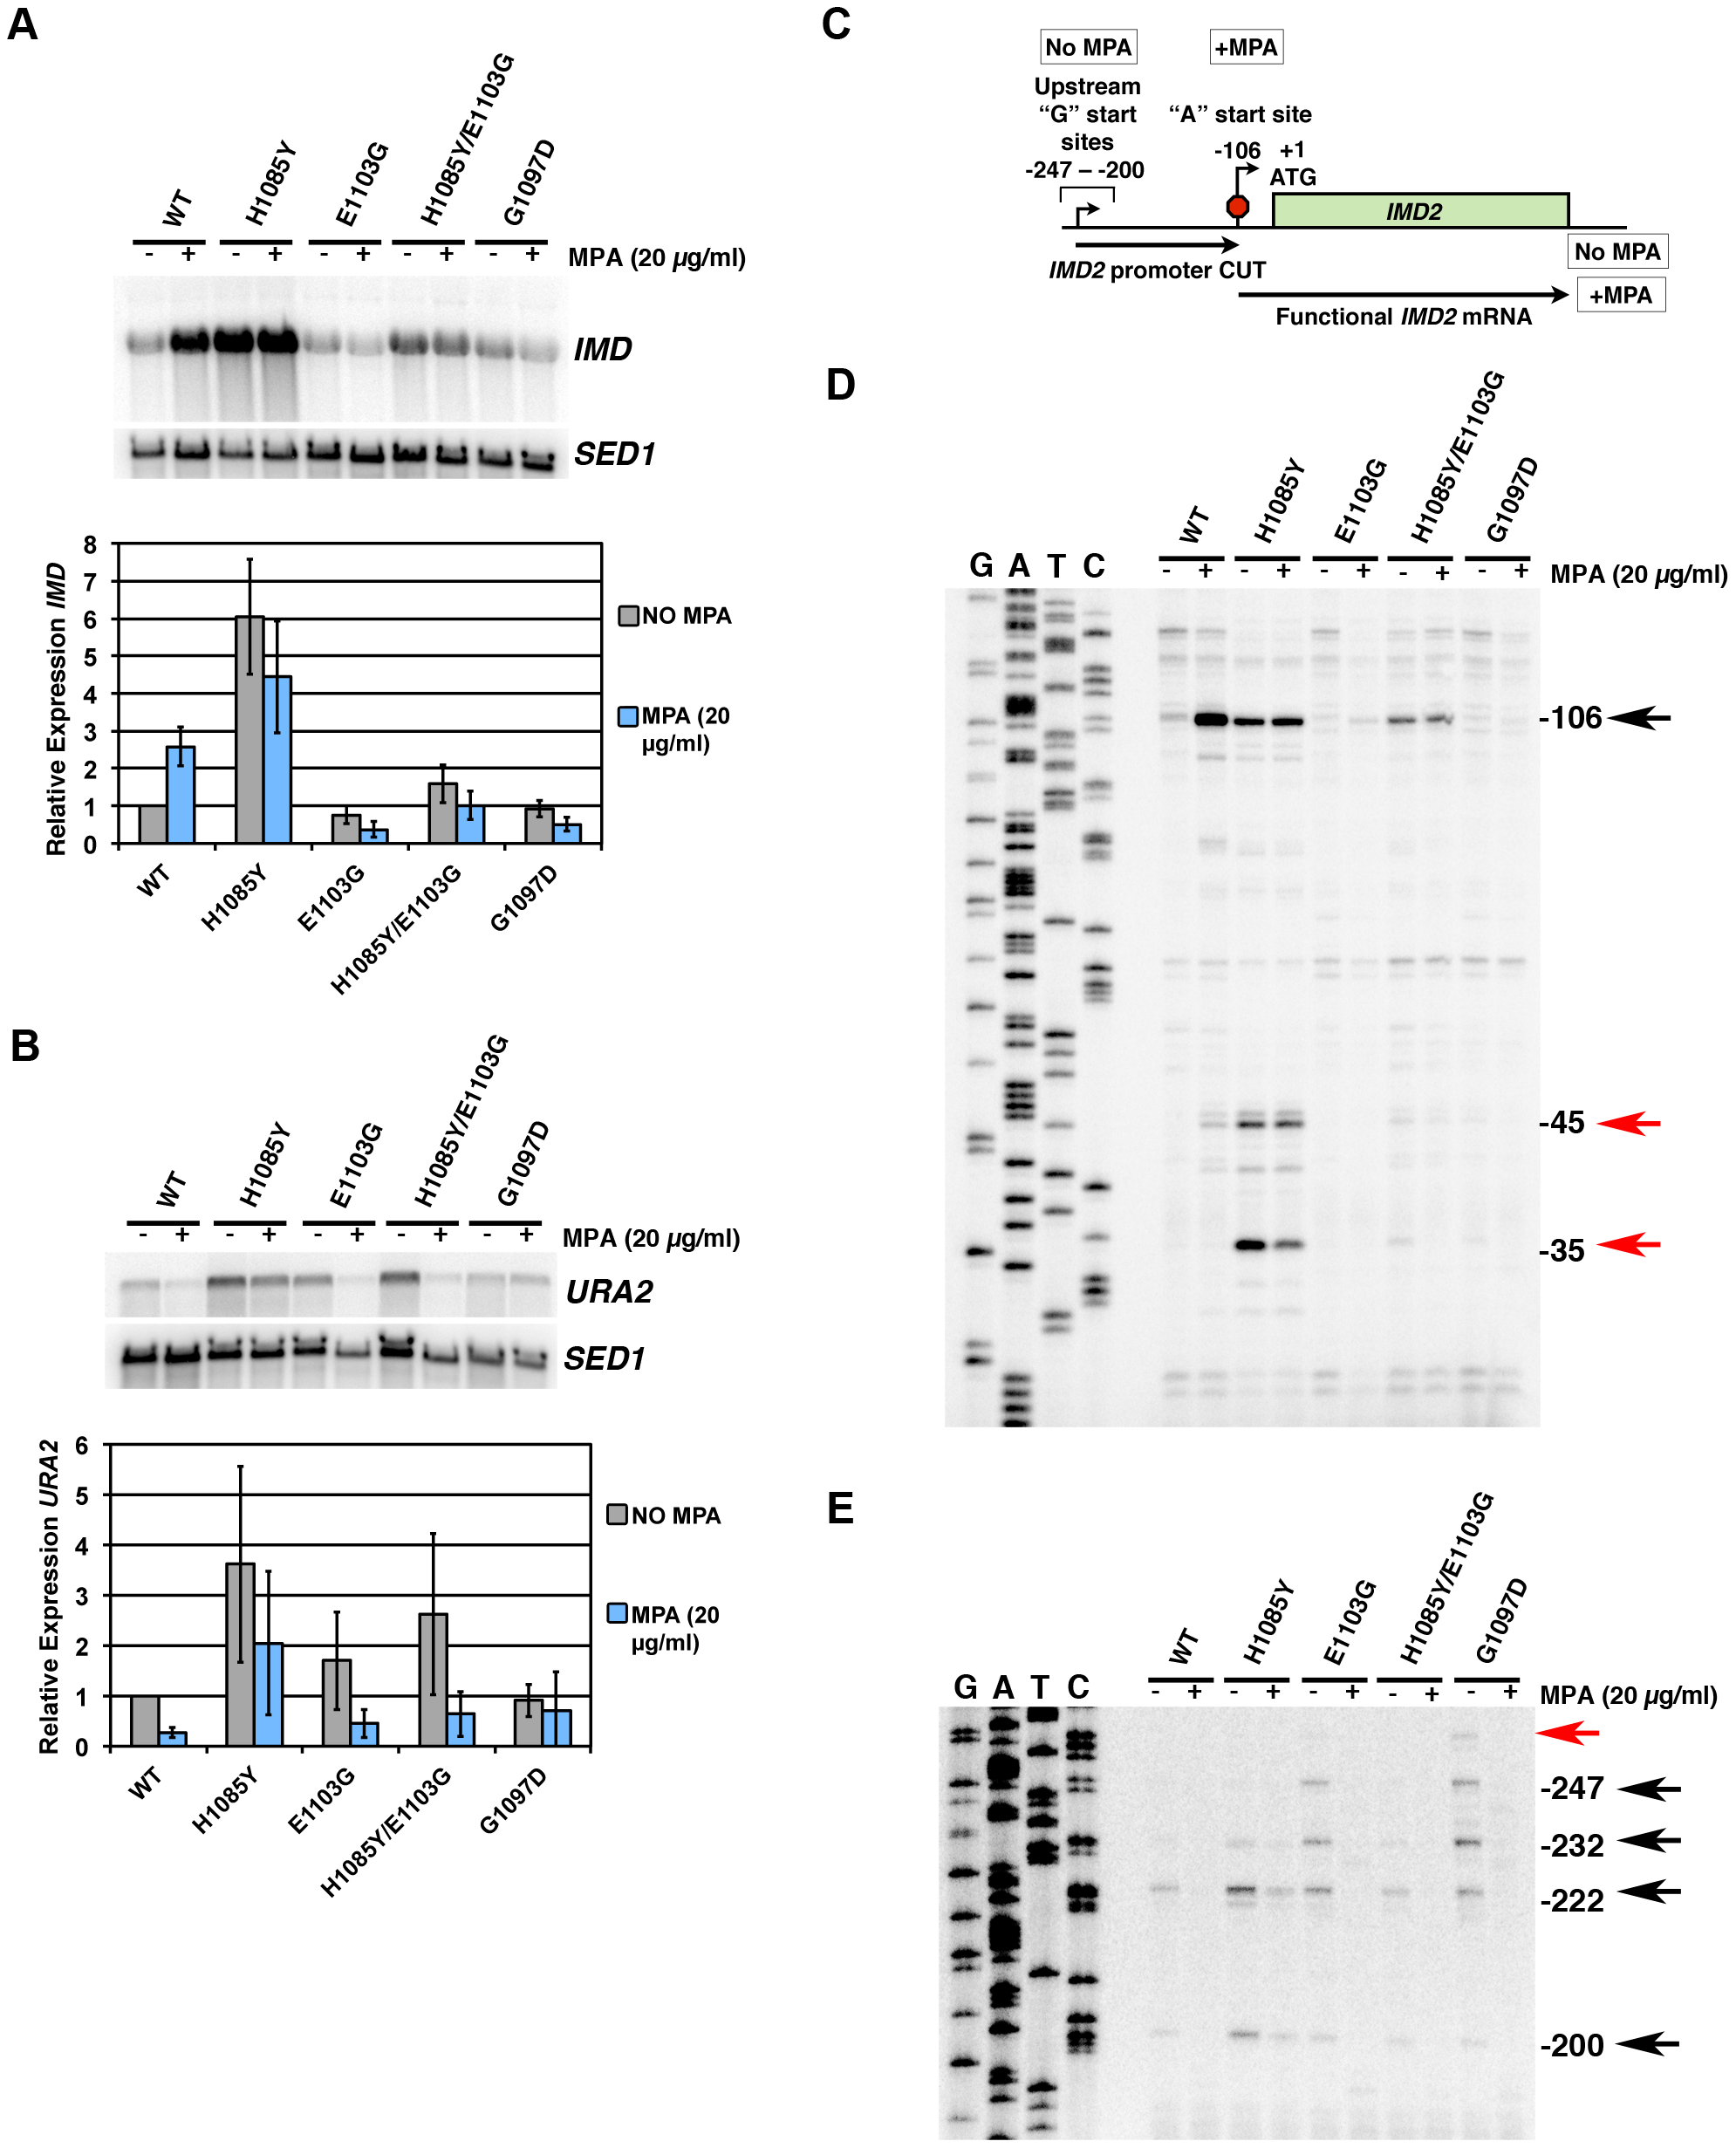 Pol II TL mutants alter transcription of <i>IMD2</i> and <i>URA2</i>, genes required for GTP and UTP synthesis, respectively.